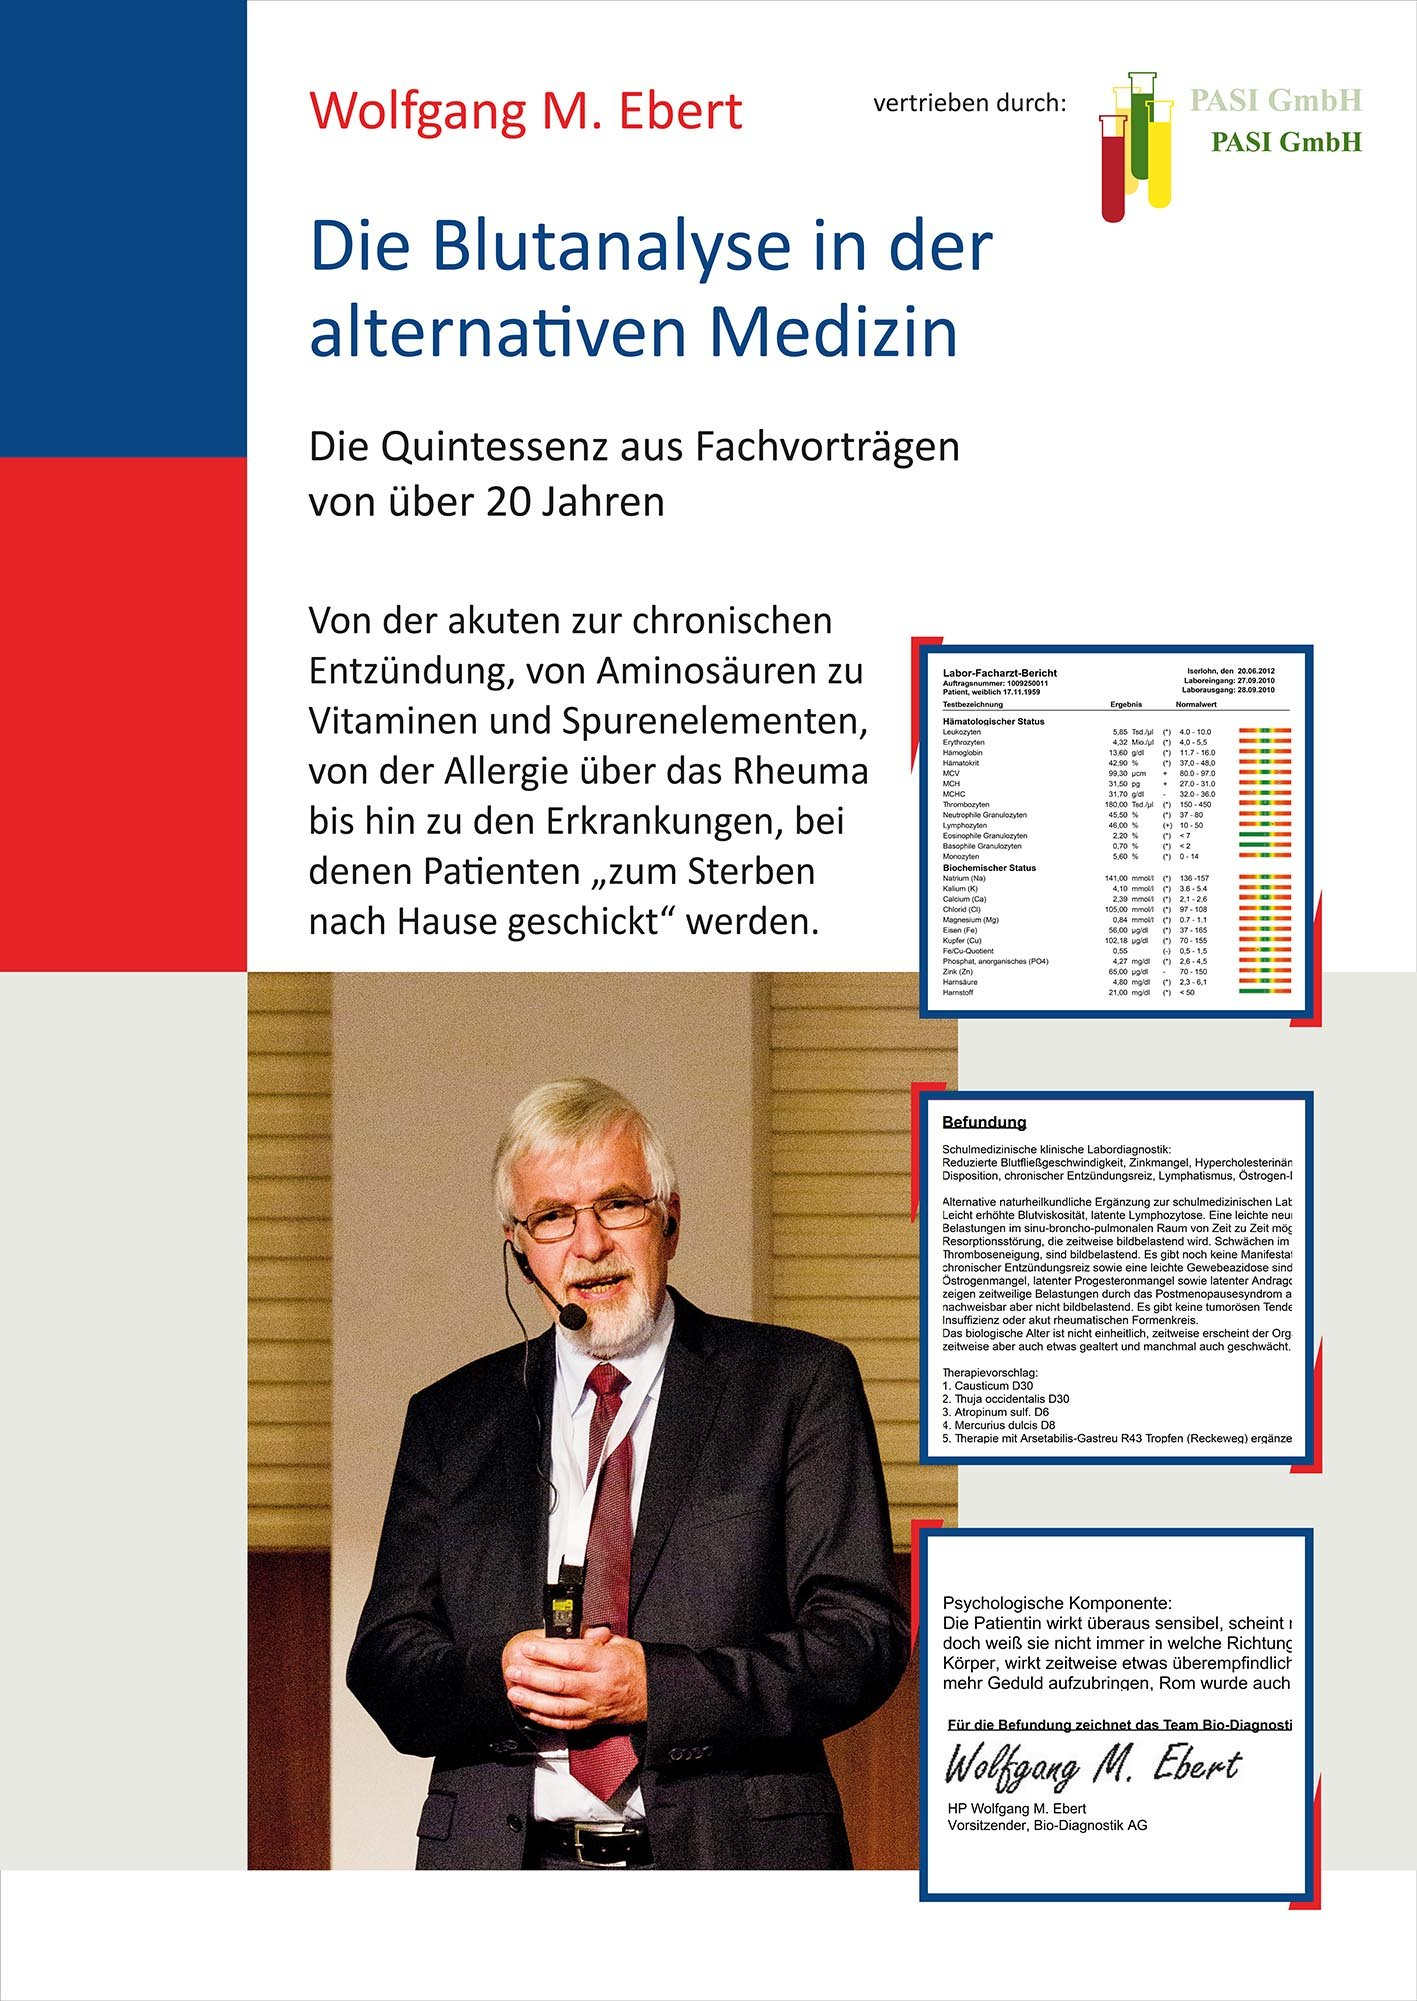 Die Blutanalyse in der alternativen Medizin: Amazon.de: Wolfgang M ...